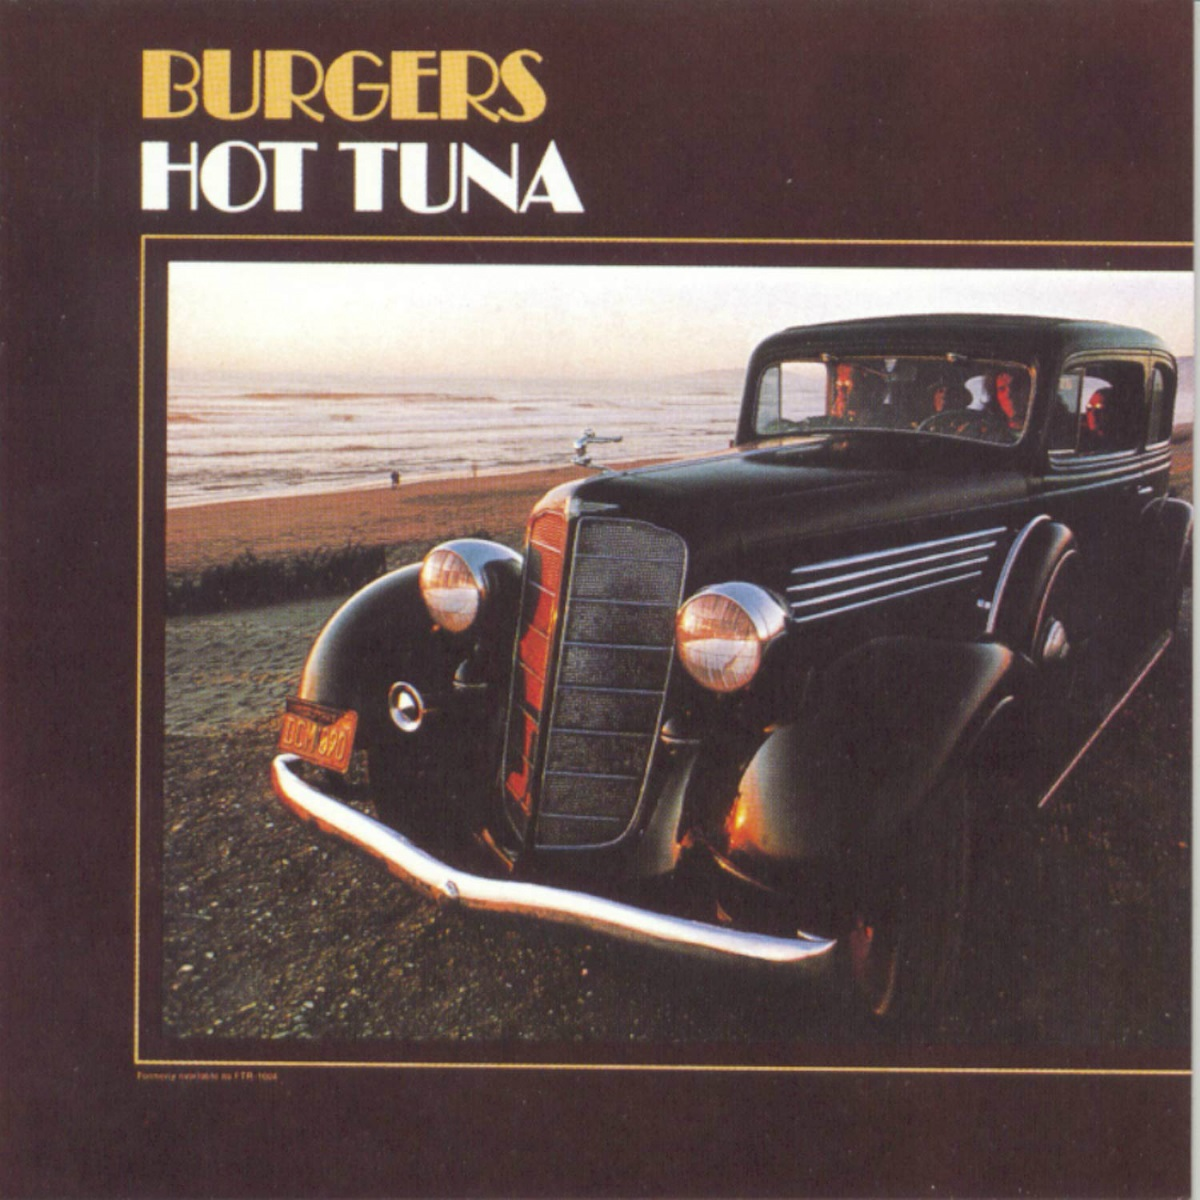 Hot Tuna - Burgers (180 Gram Blue Vinyl / Limited Anniversary Edition / Gatefold Cover)